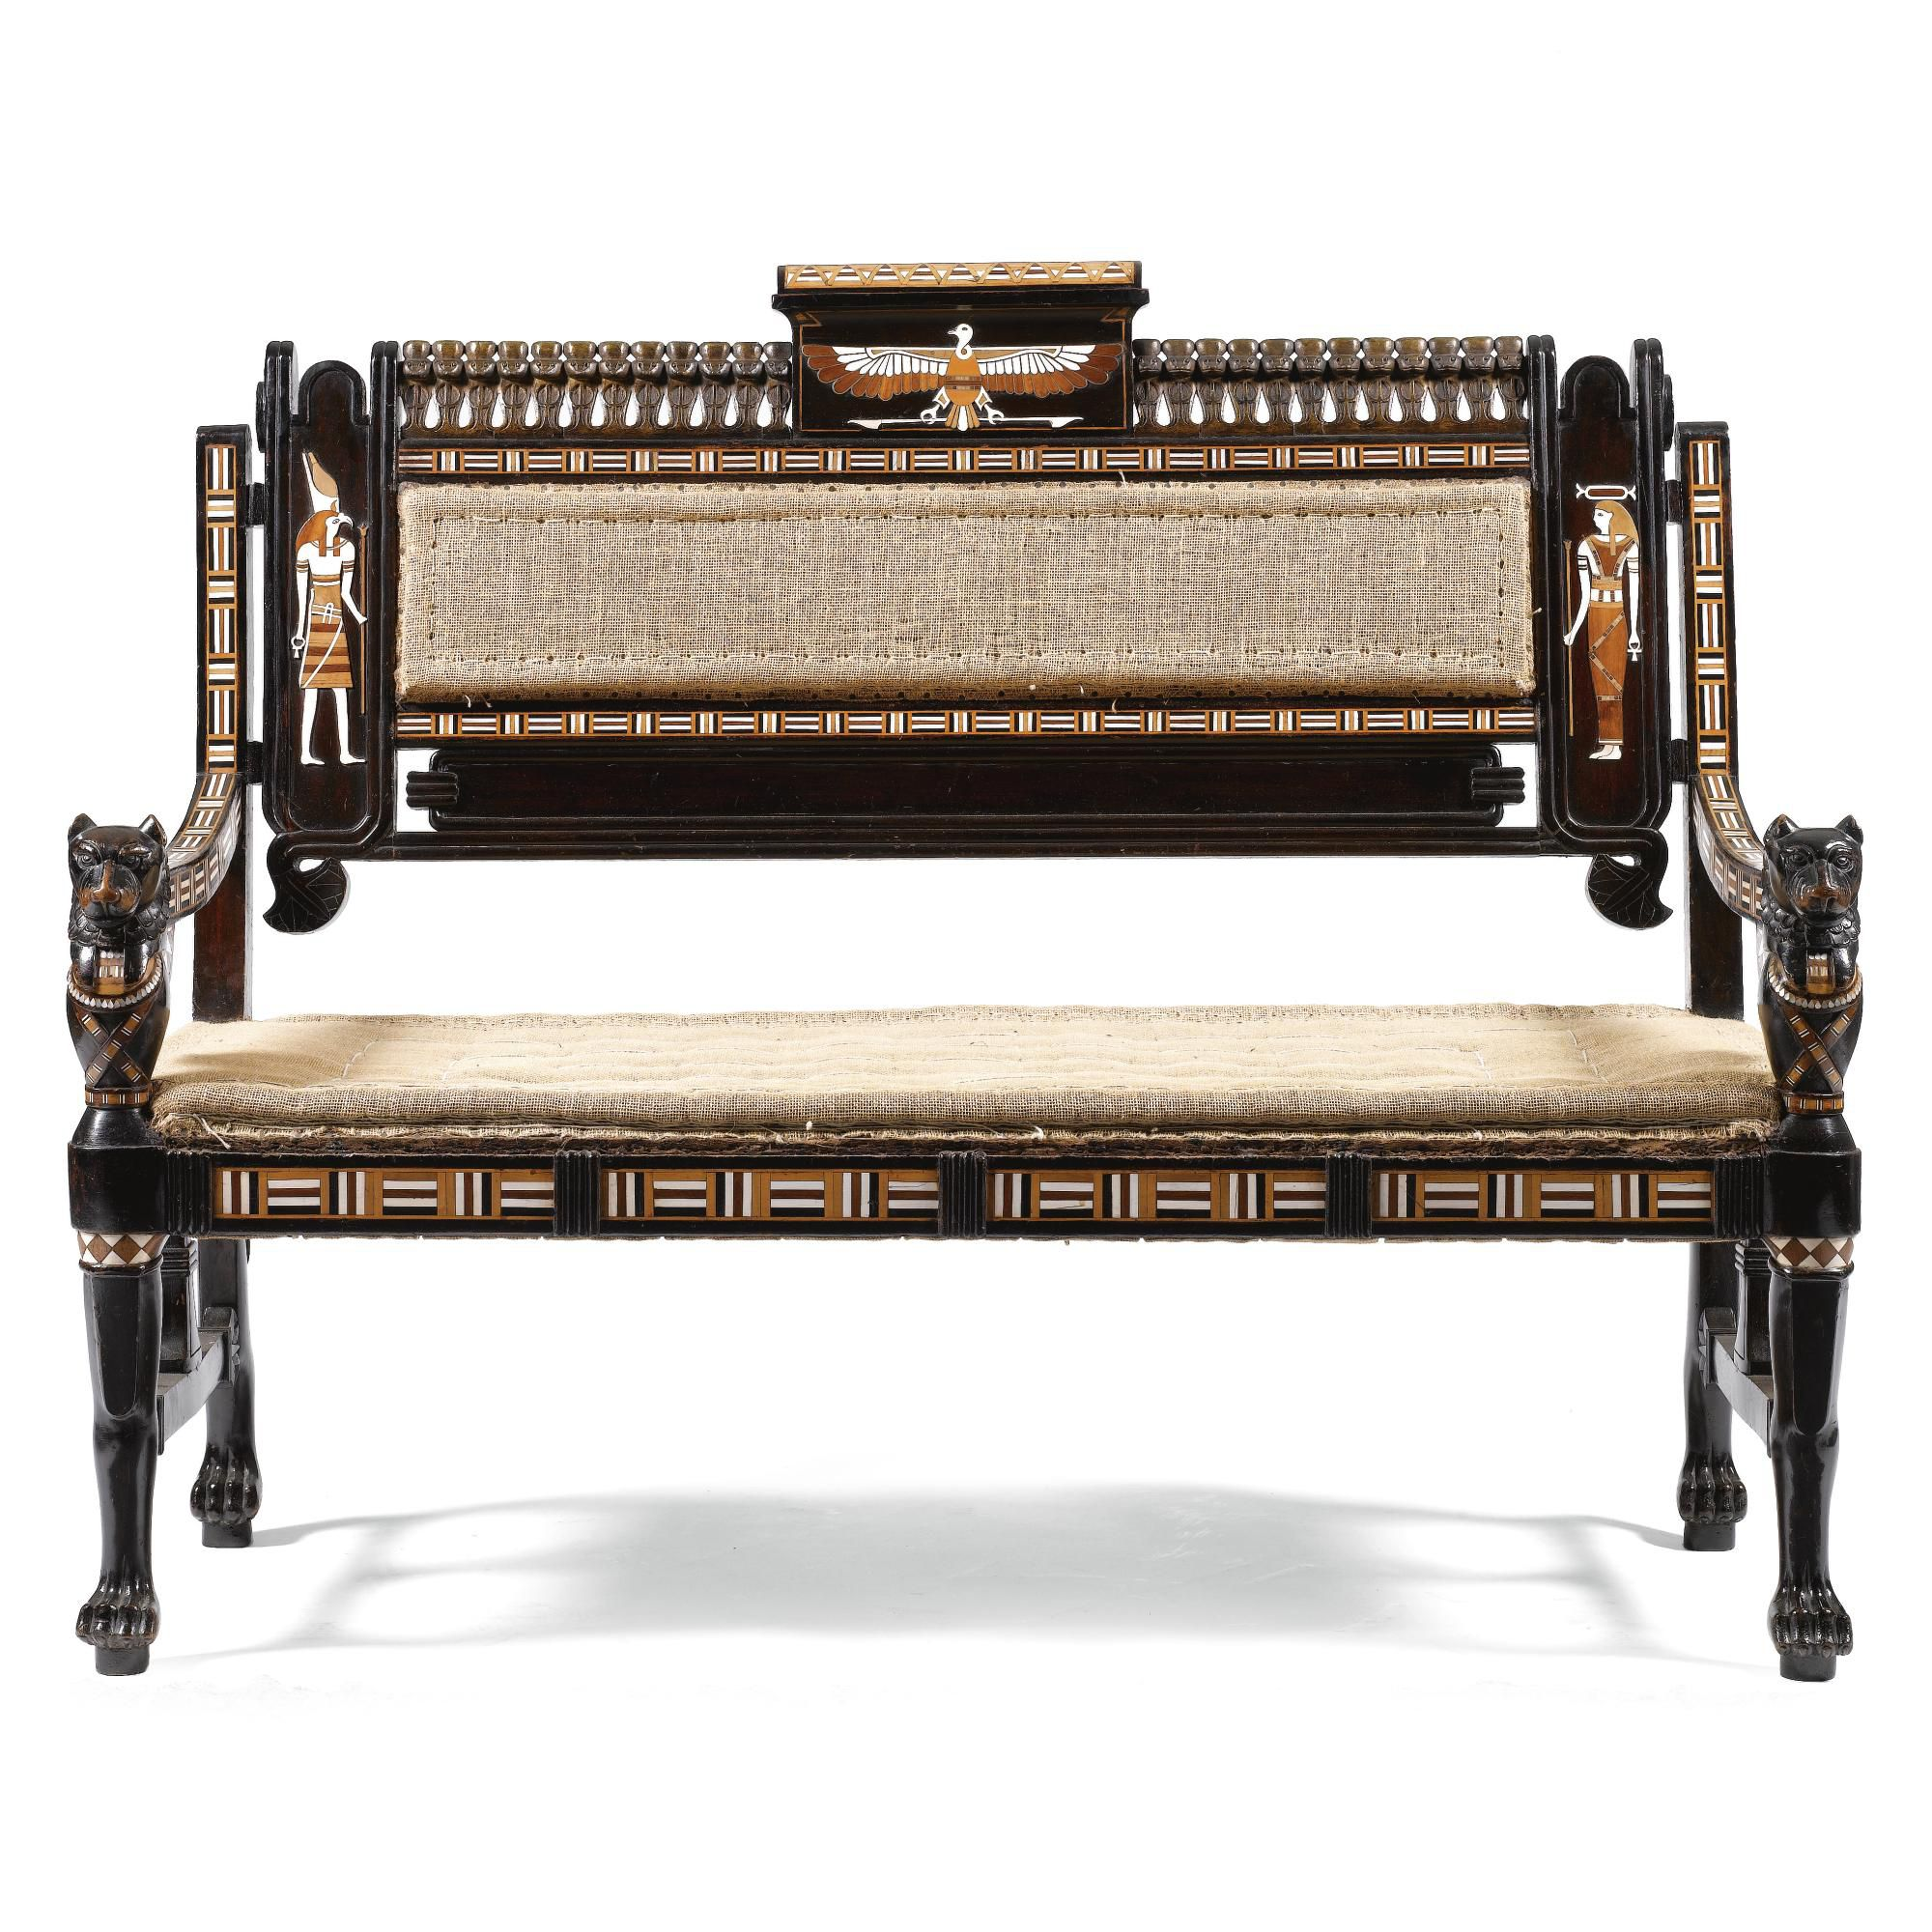 Egyptian Furniture: An Egyptian Revival Ebony And Inlaid Settee, Late 19th